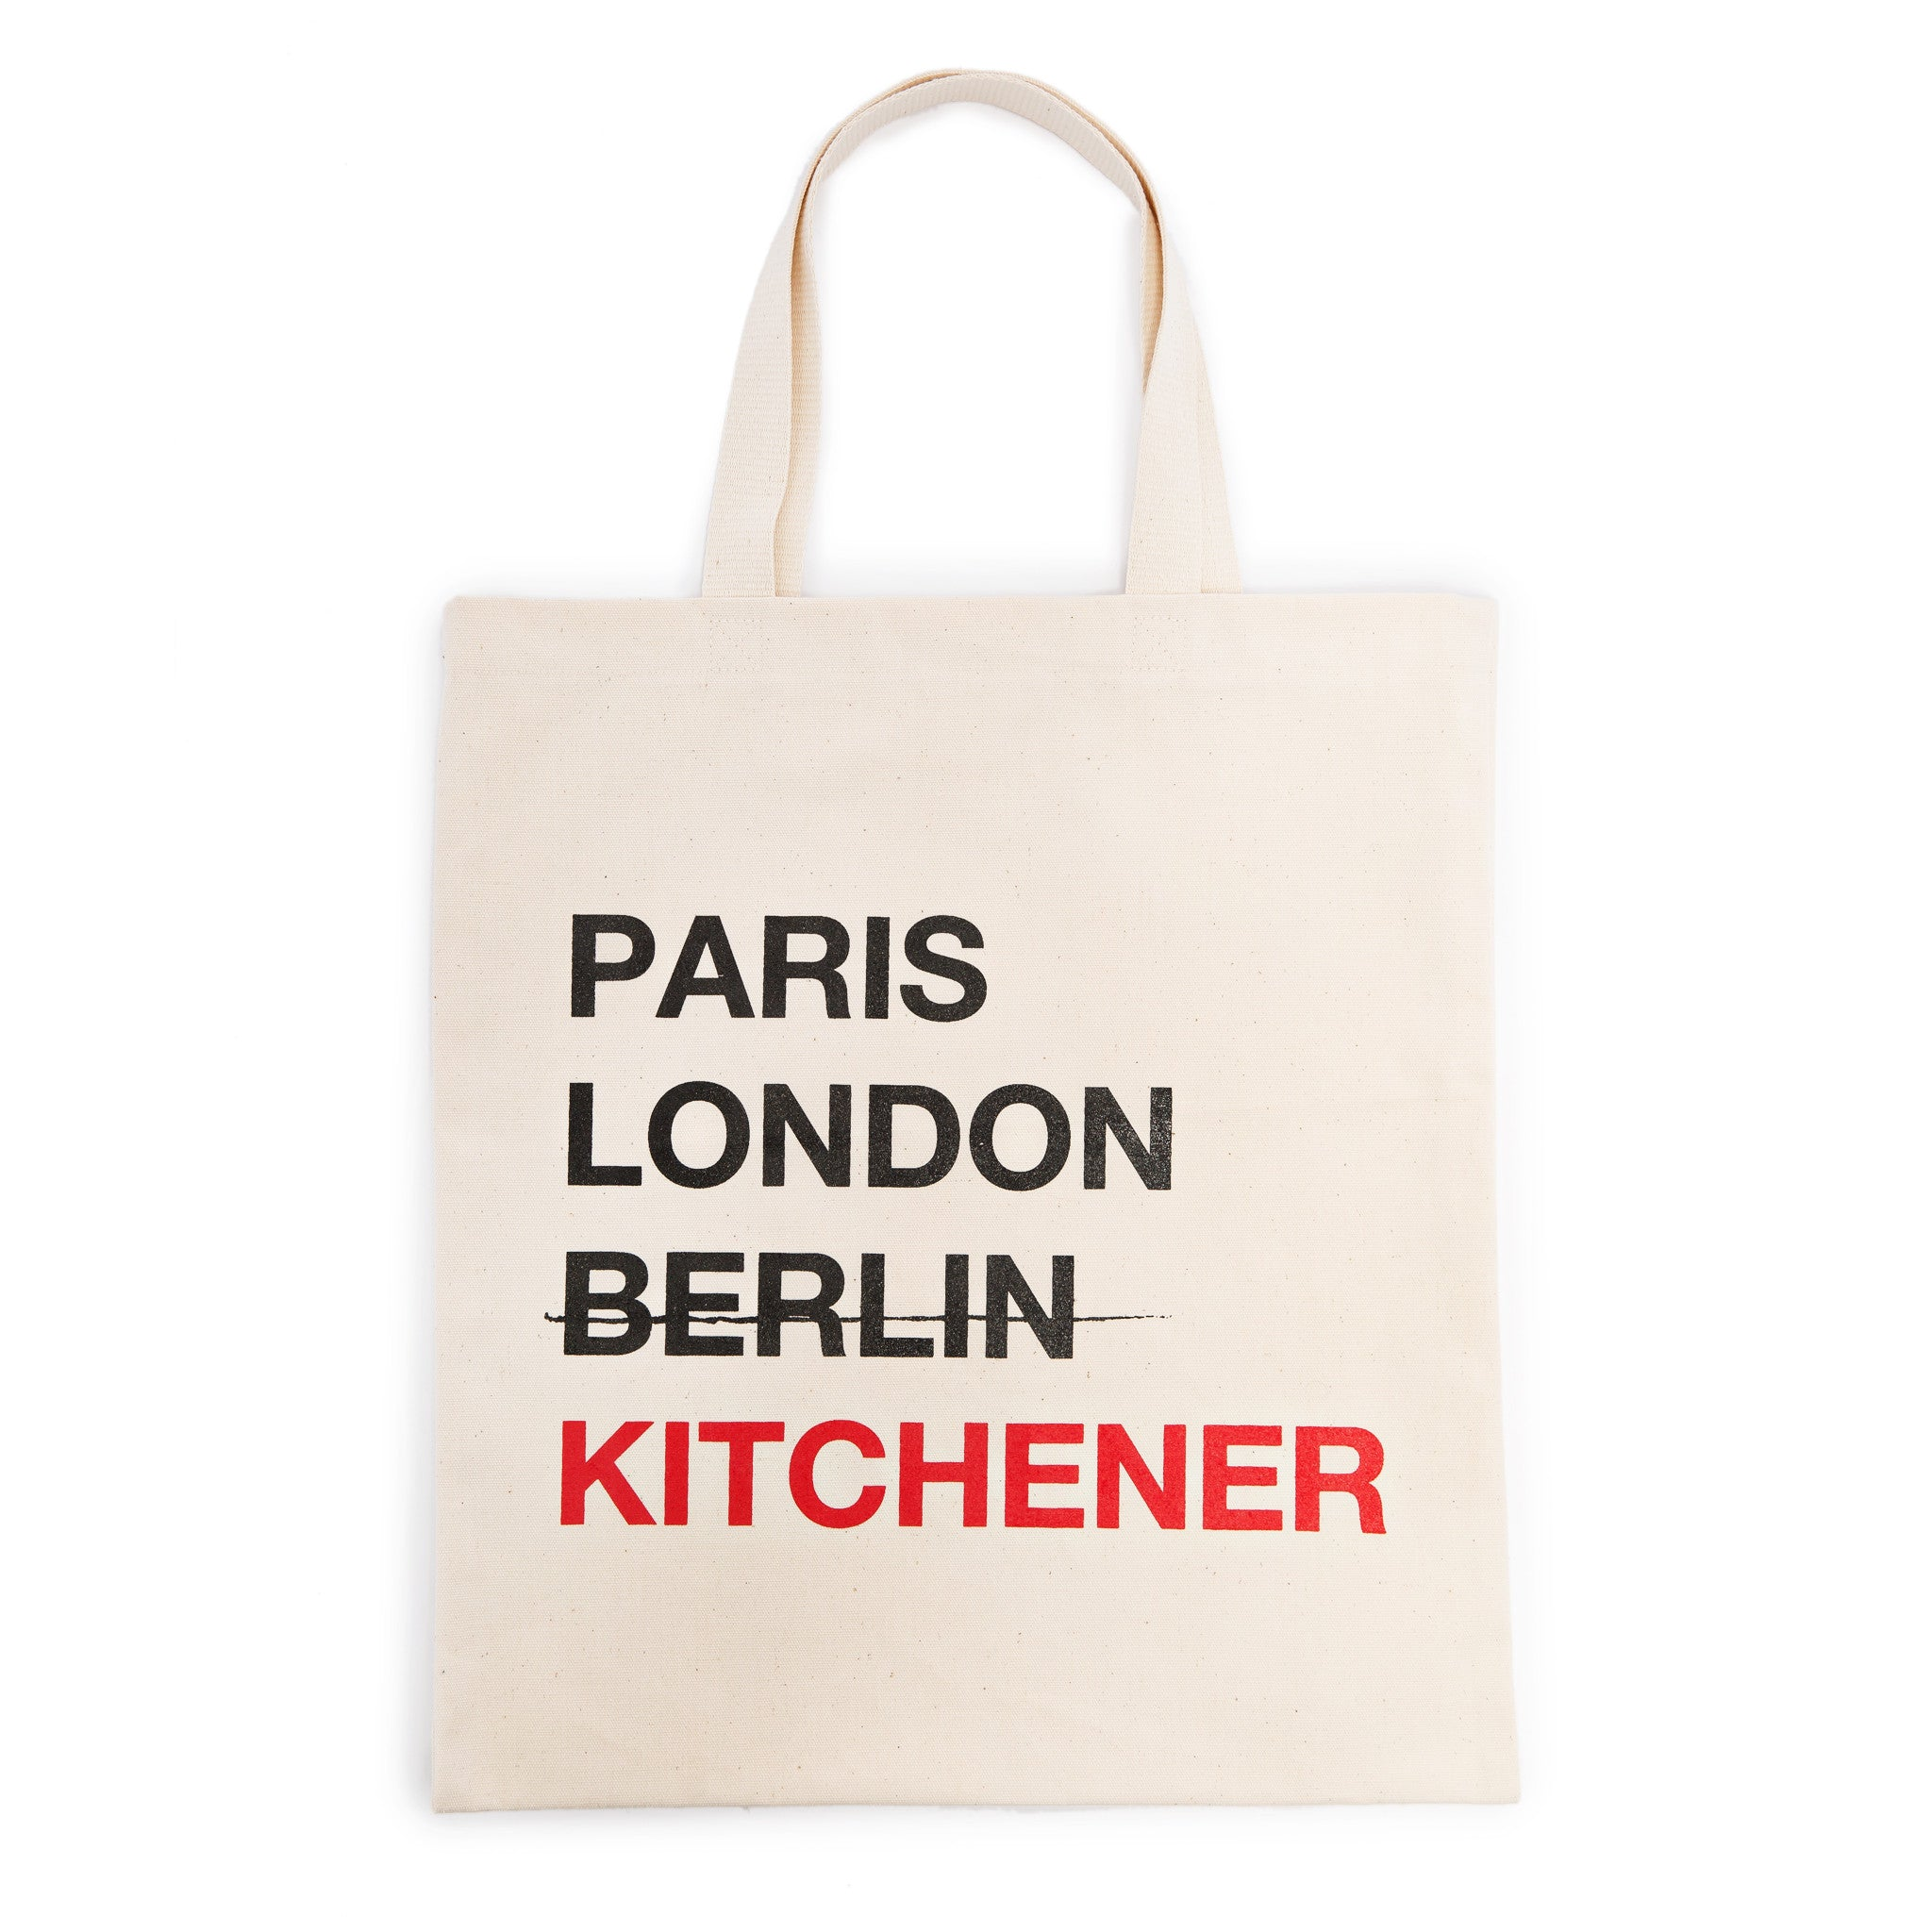 Paris London Berlin Kitchener Tote Bag